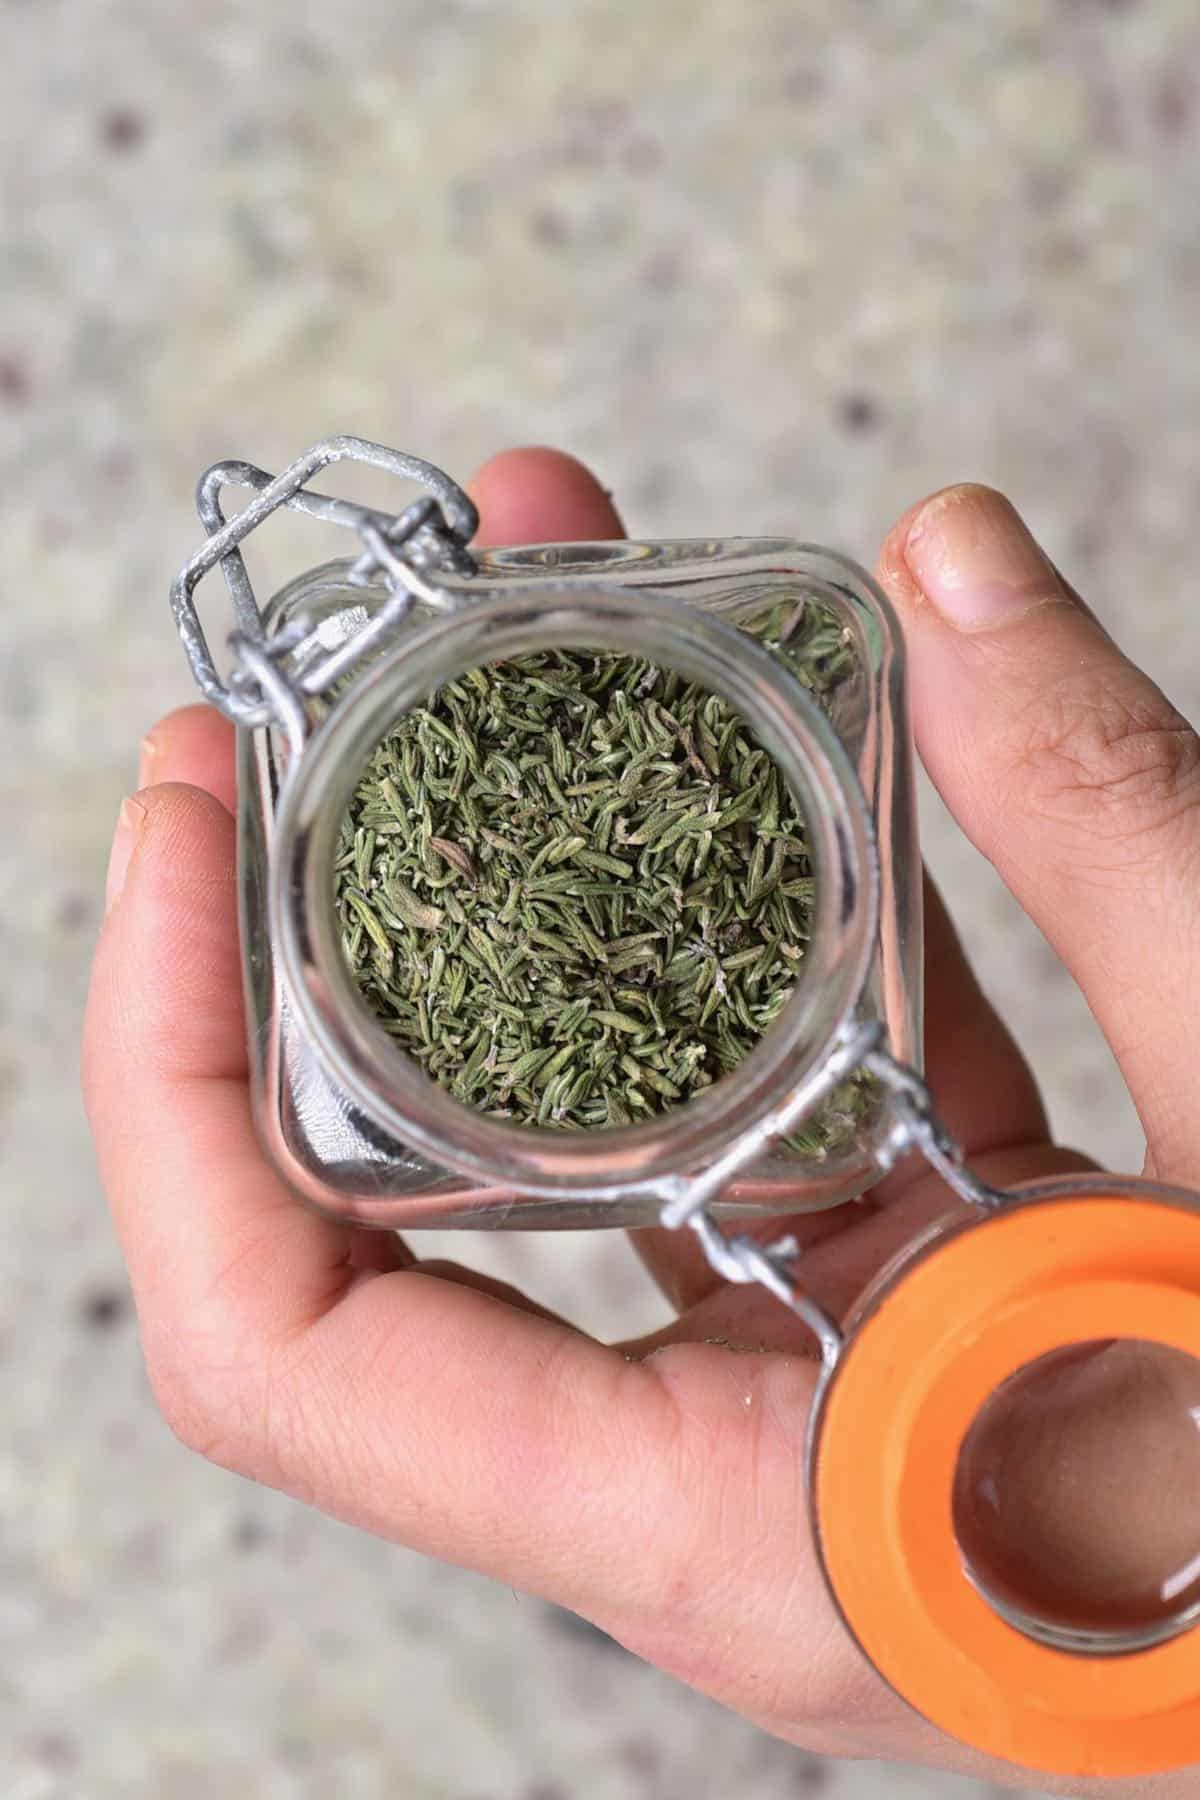 A hand holding a little jar with homemade dried thyme